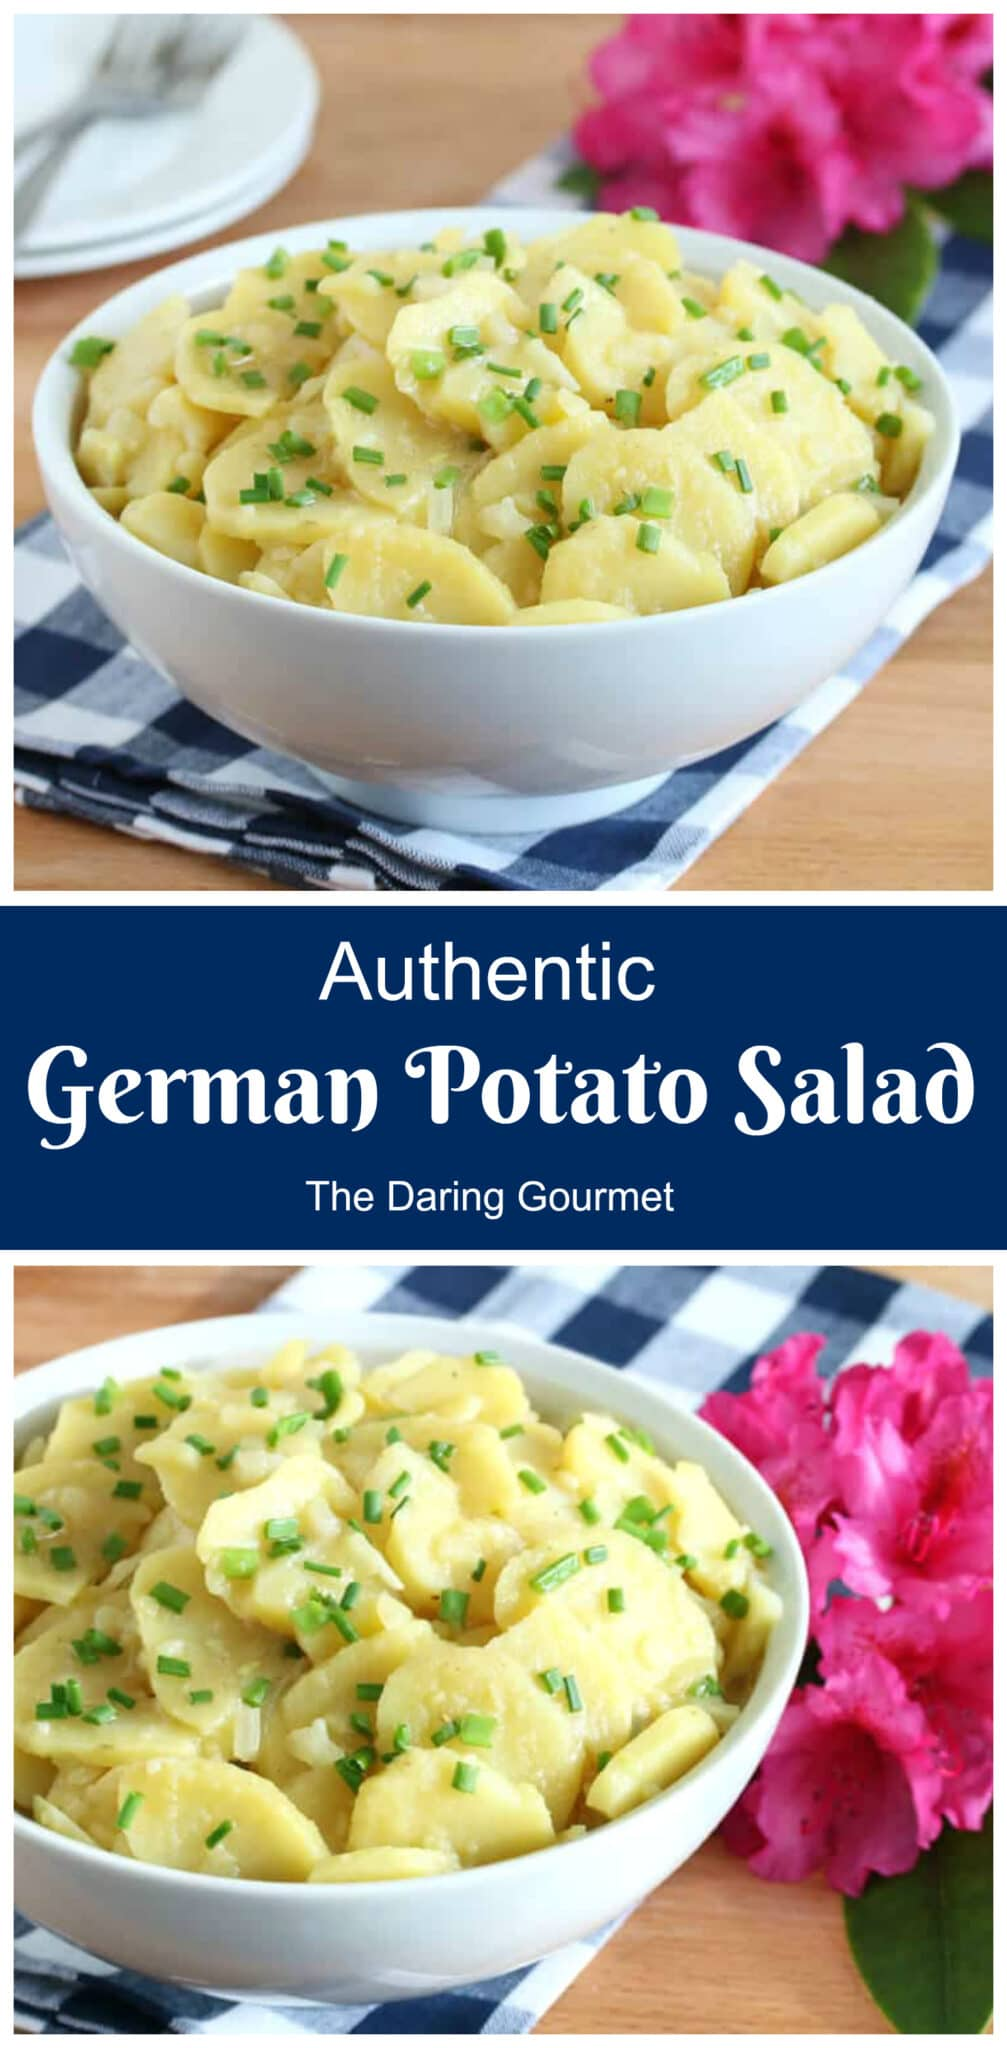 german potato salad recipe best homemade authentic traditional swabian restaurant style vinegar